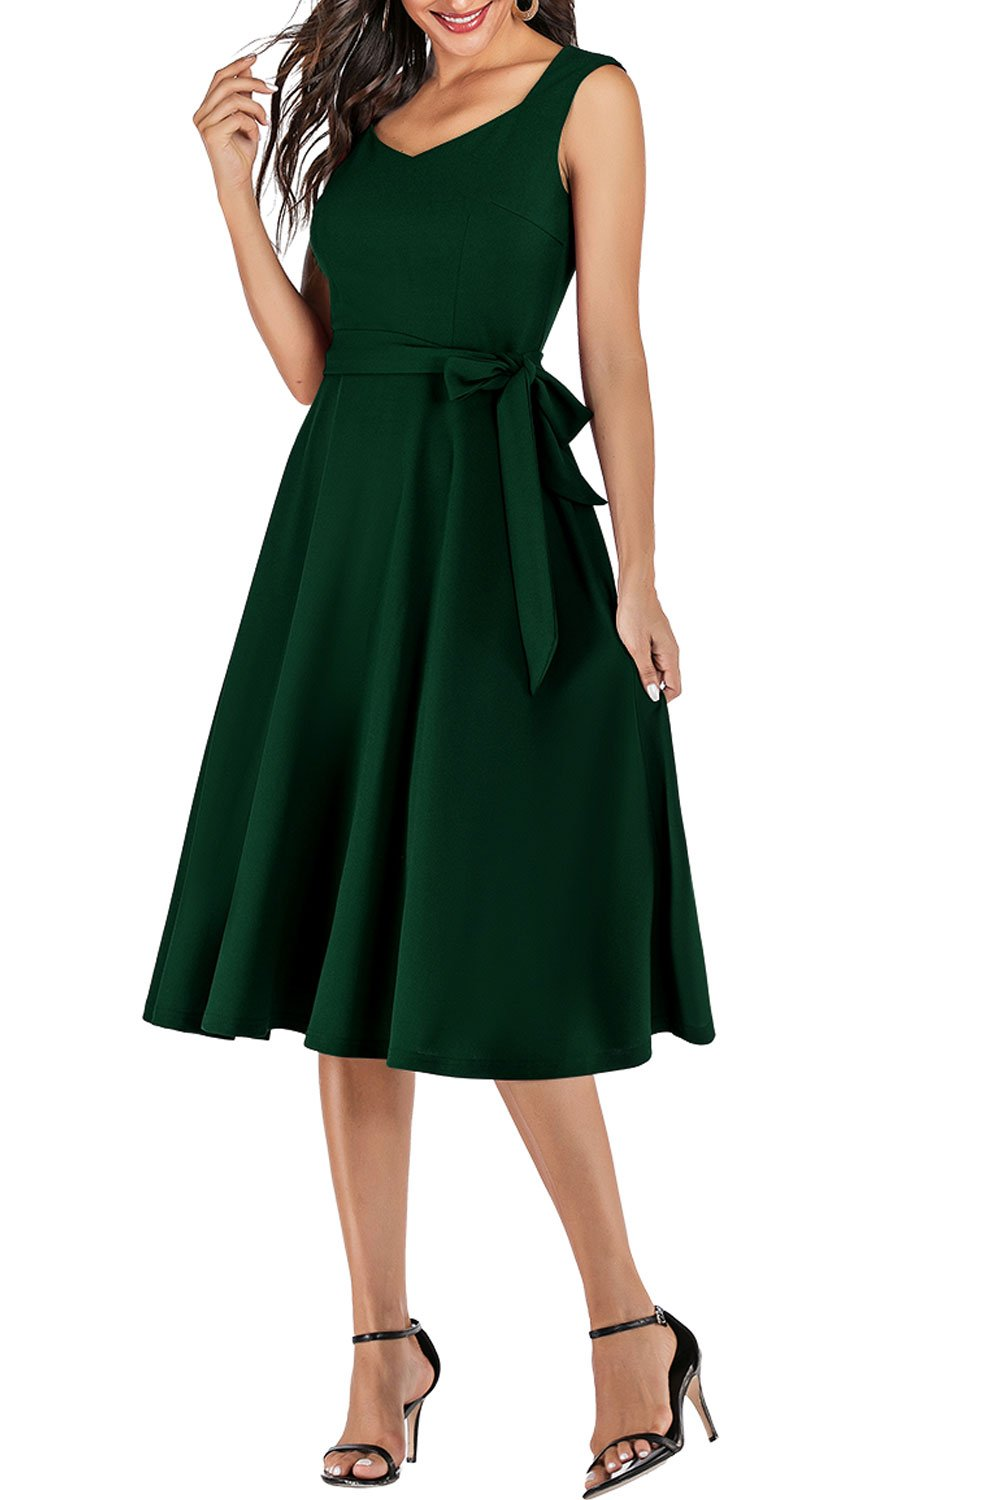 Soft Dark Green Dress